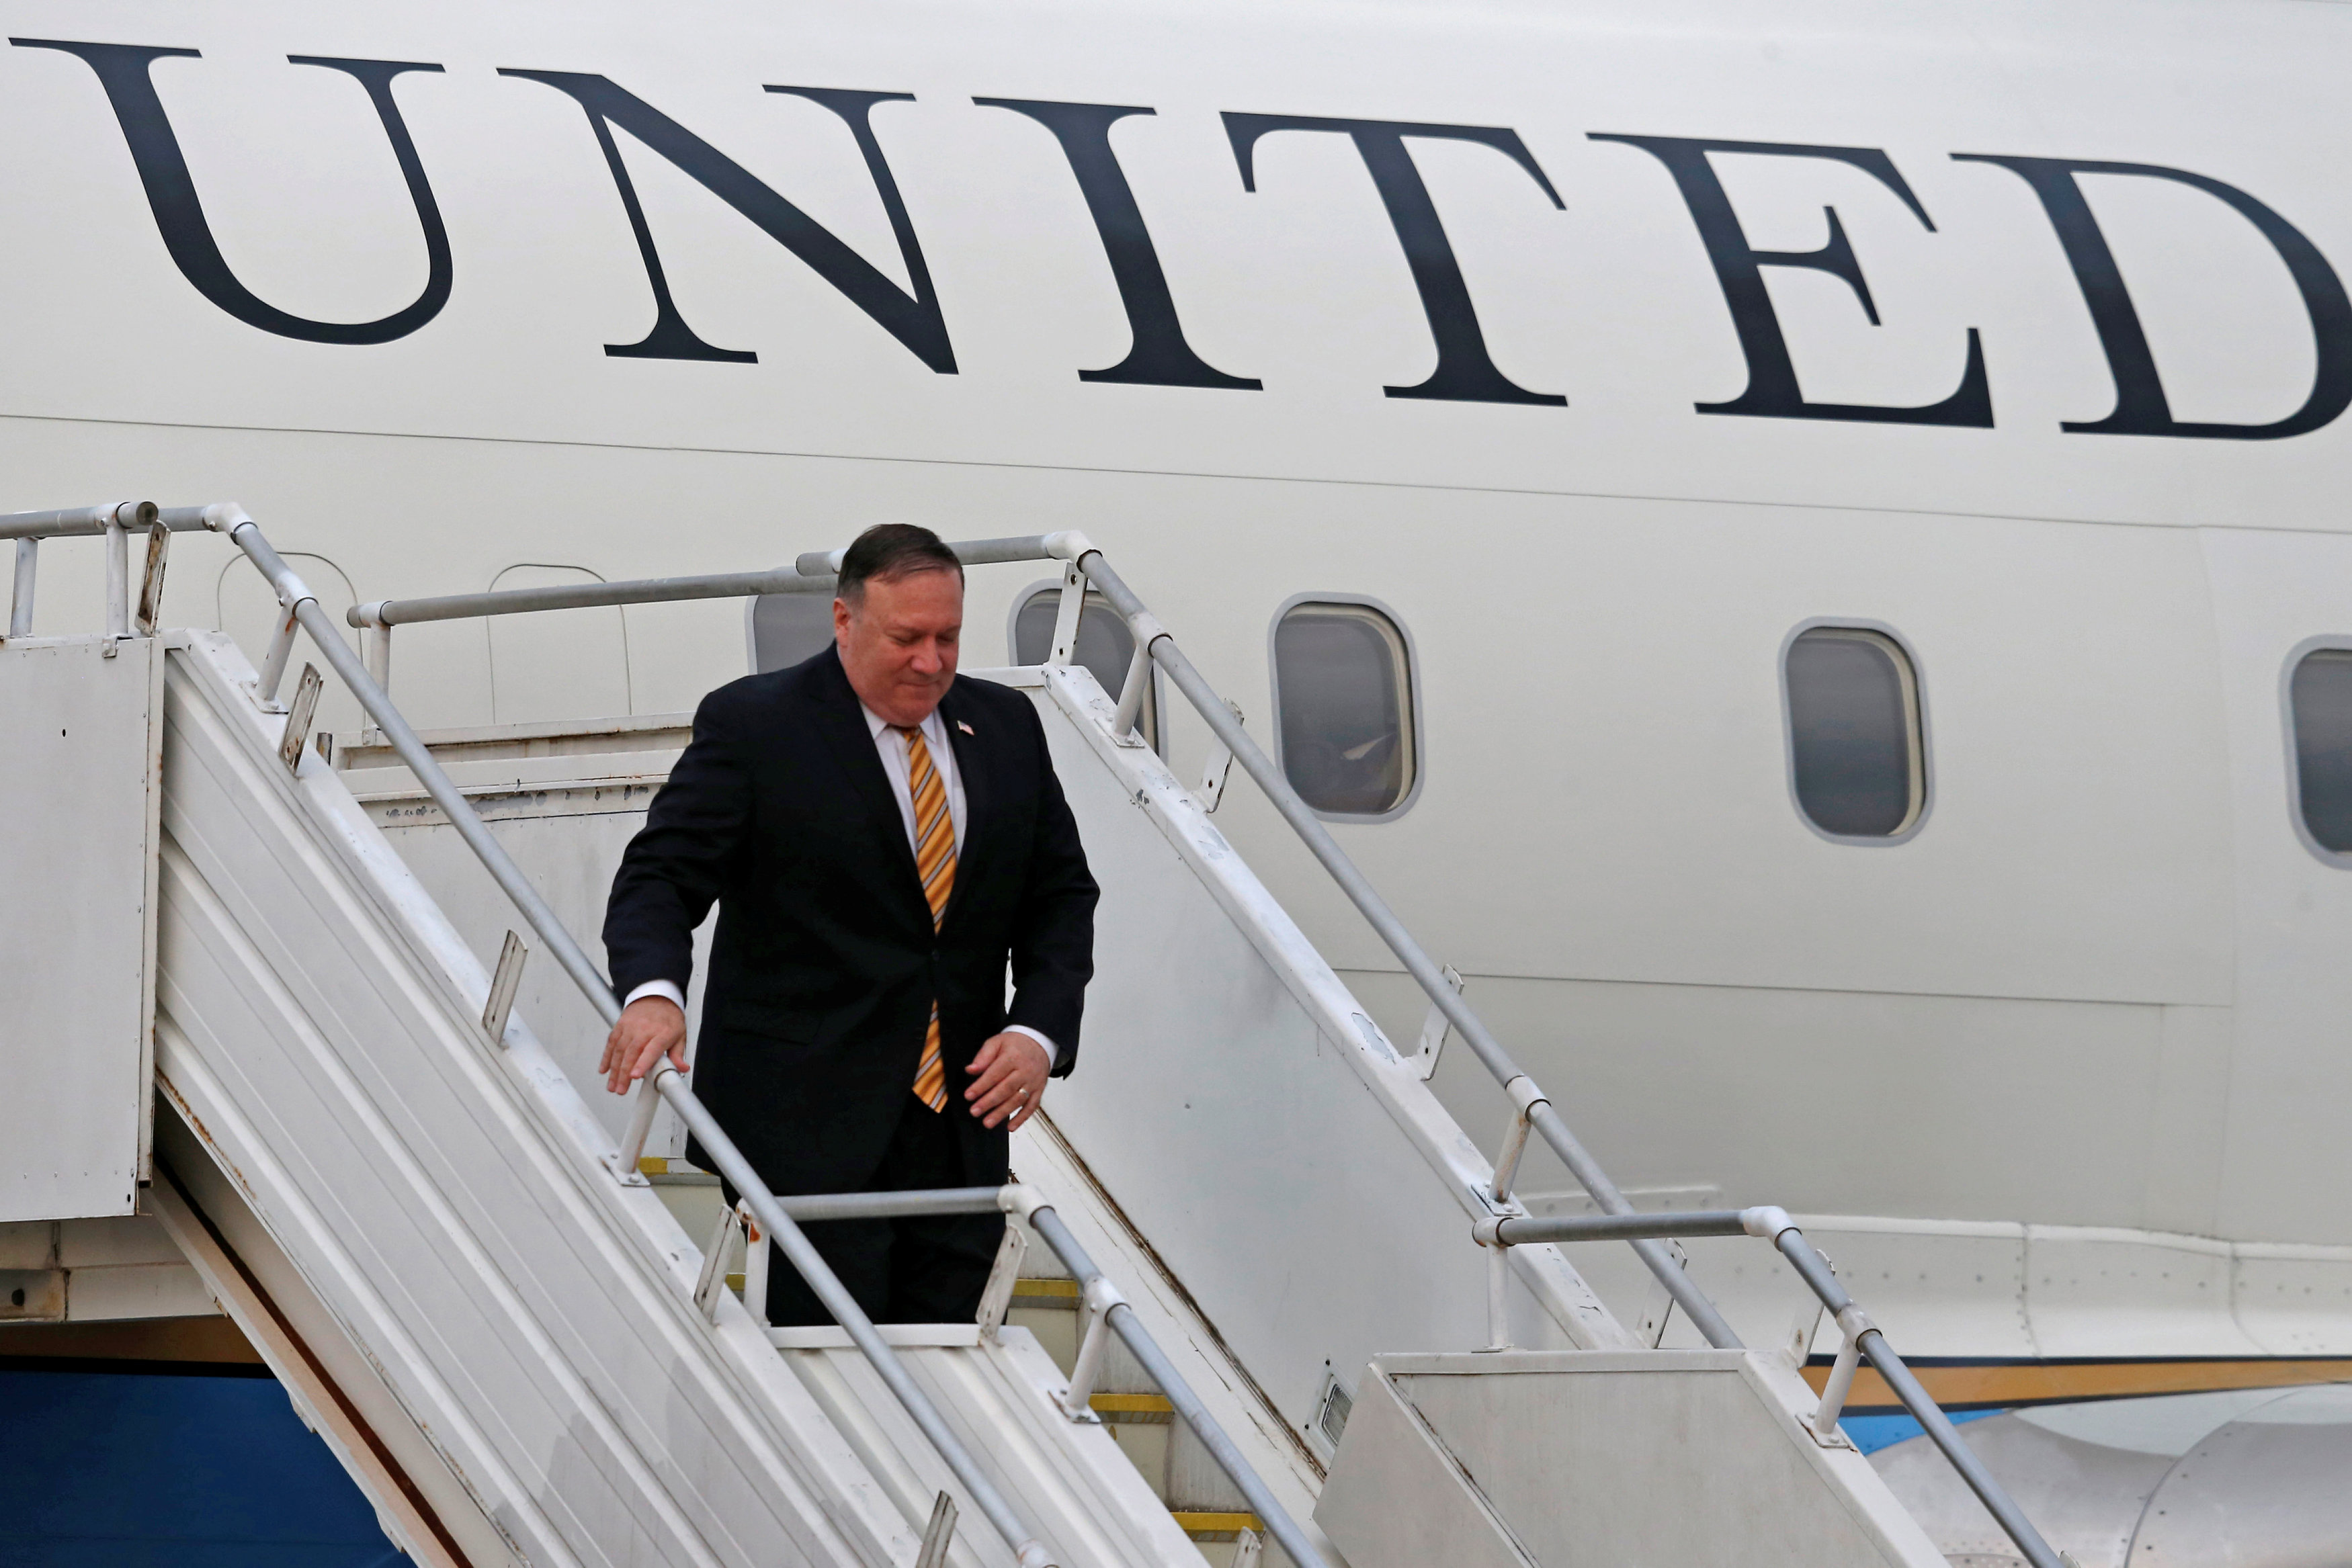 U.S. Secretary of State Mike Pompeo arrives at Royal Malaysian Air Force base in Subang, Malaysia August 2, 2018. REUTERS/Lai Seng Sin